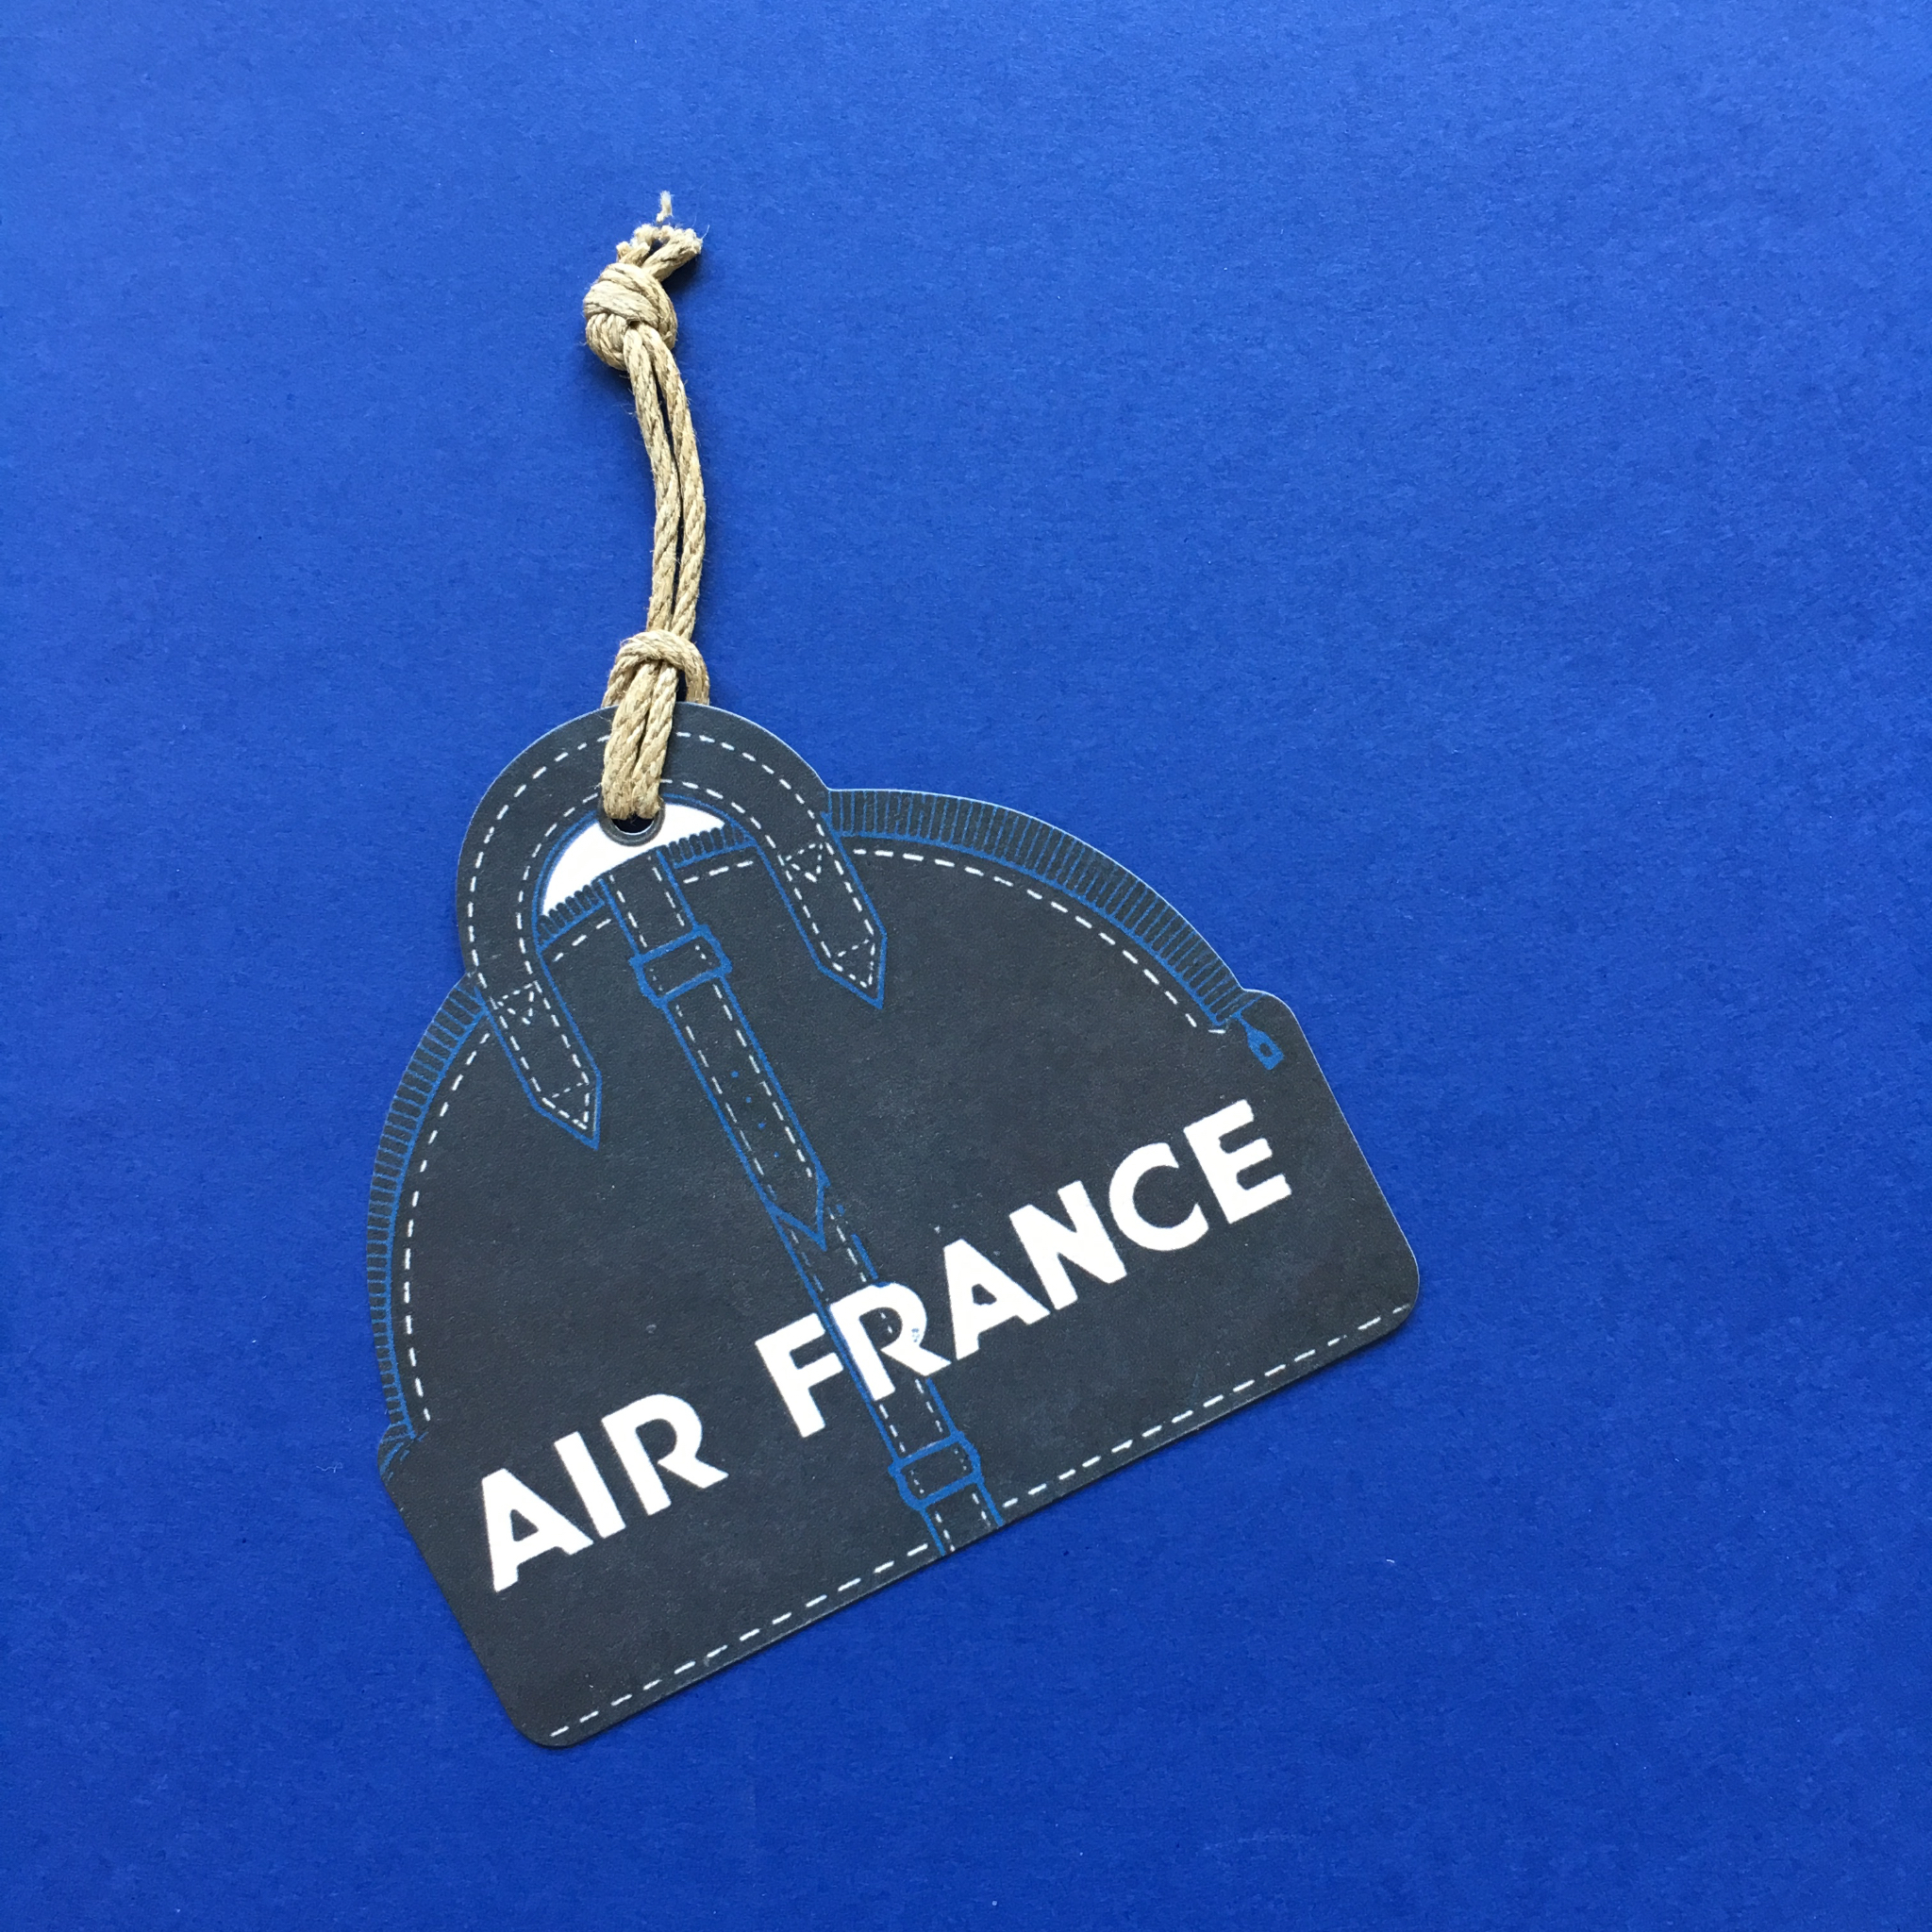 L'ÉTIQUETTES BAGAGES AIR FRANCE